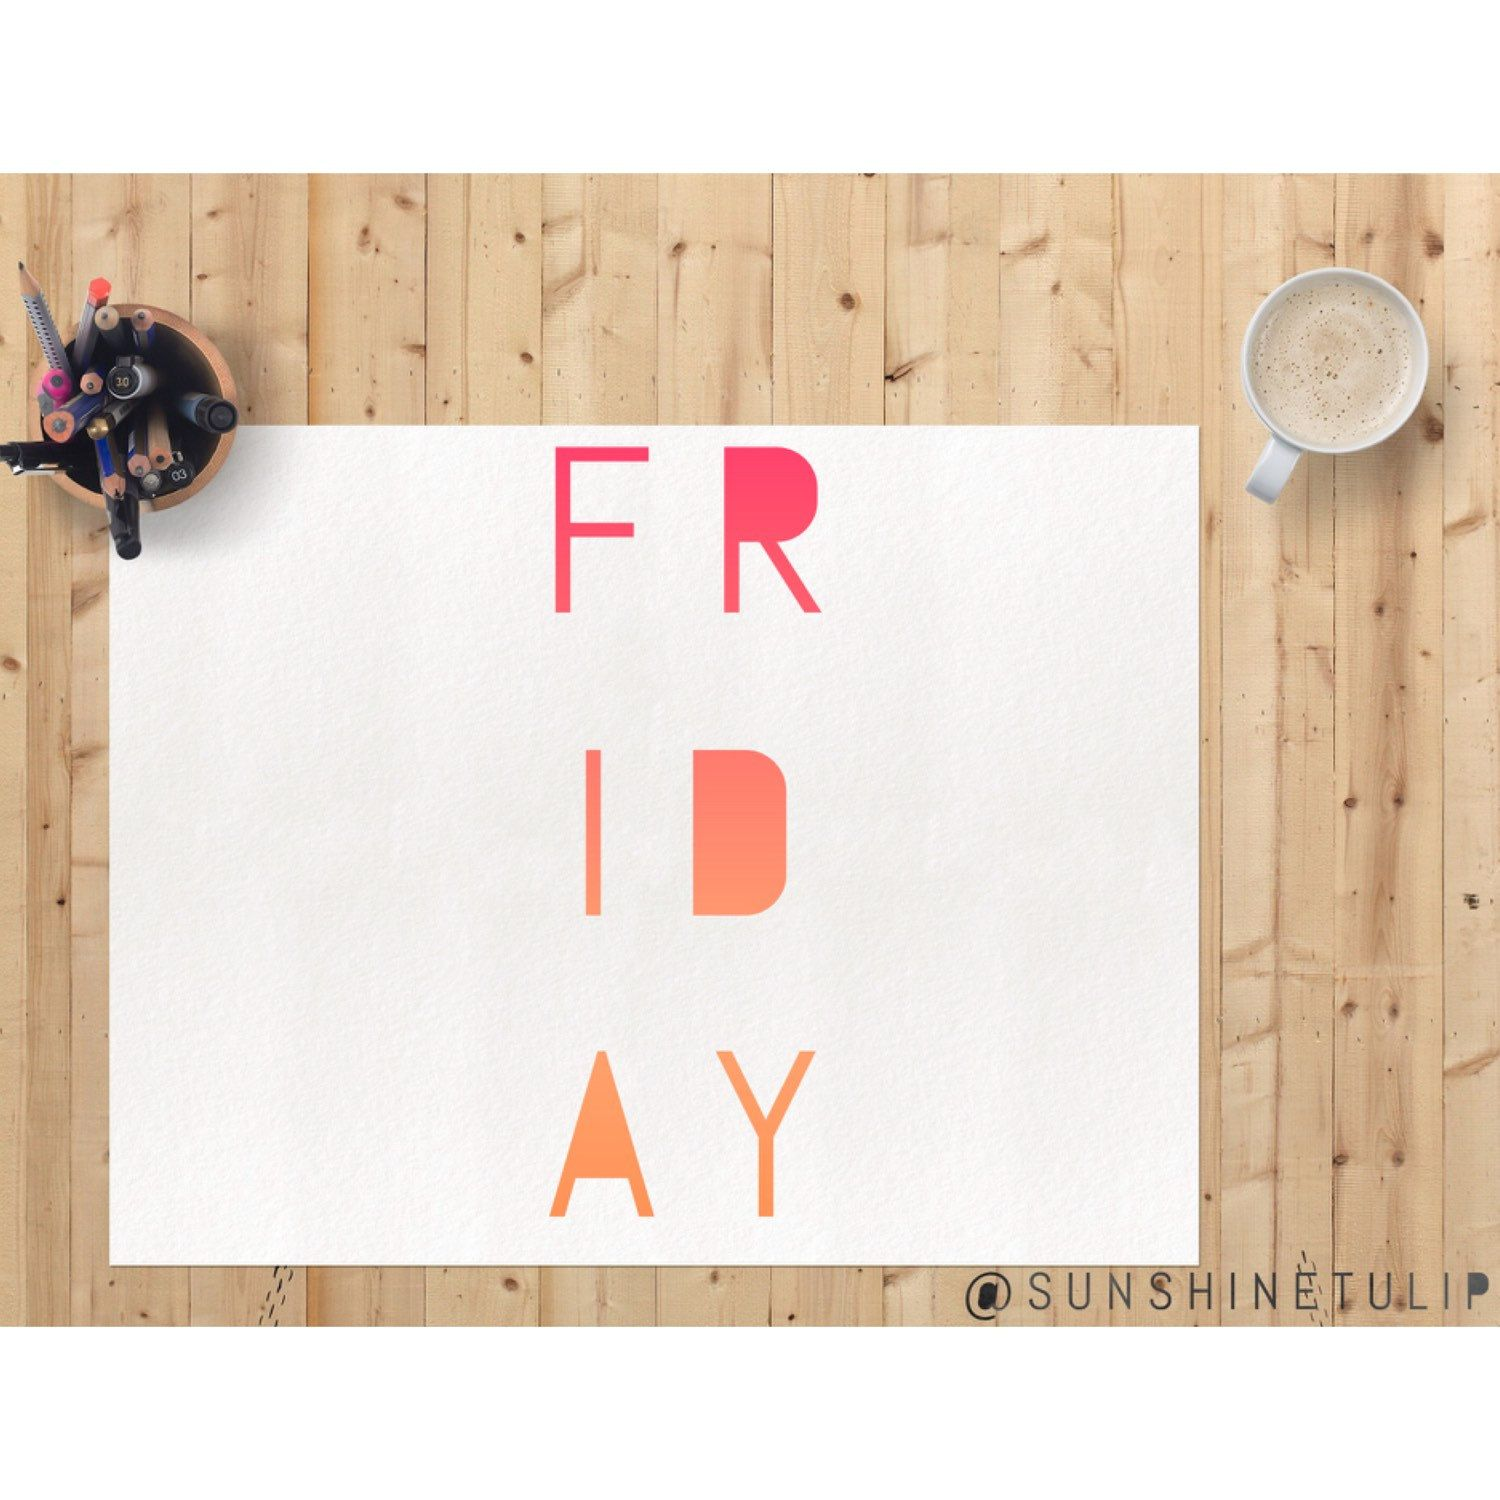 Friday to do list ... Play & create! And maybe have a donut  HaPpY FrIdAy